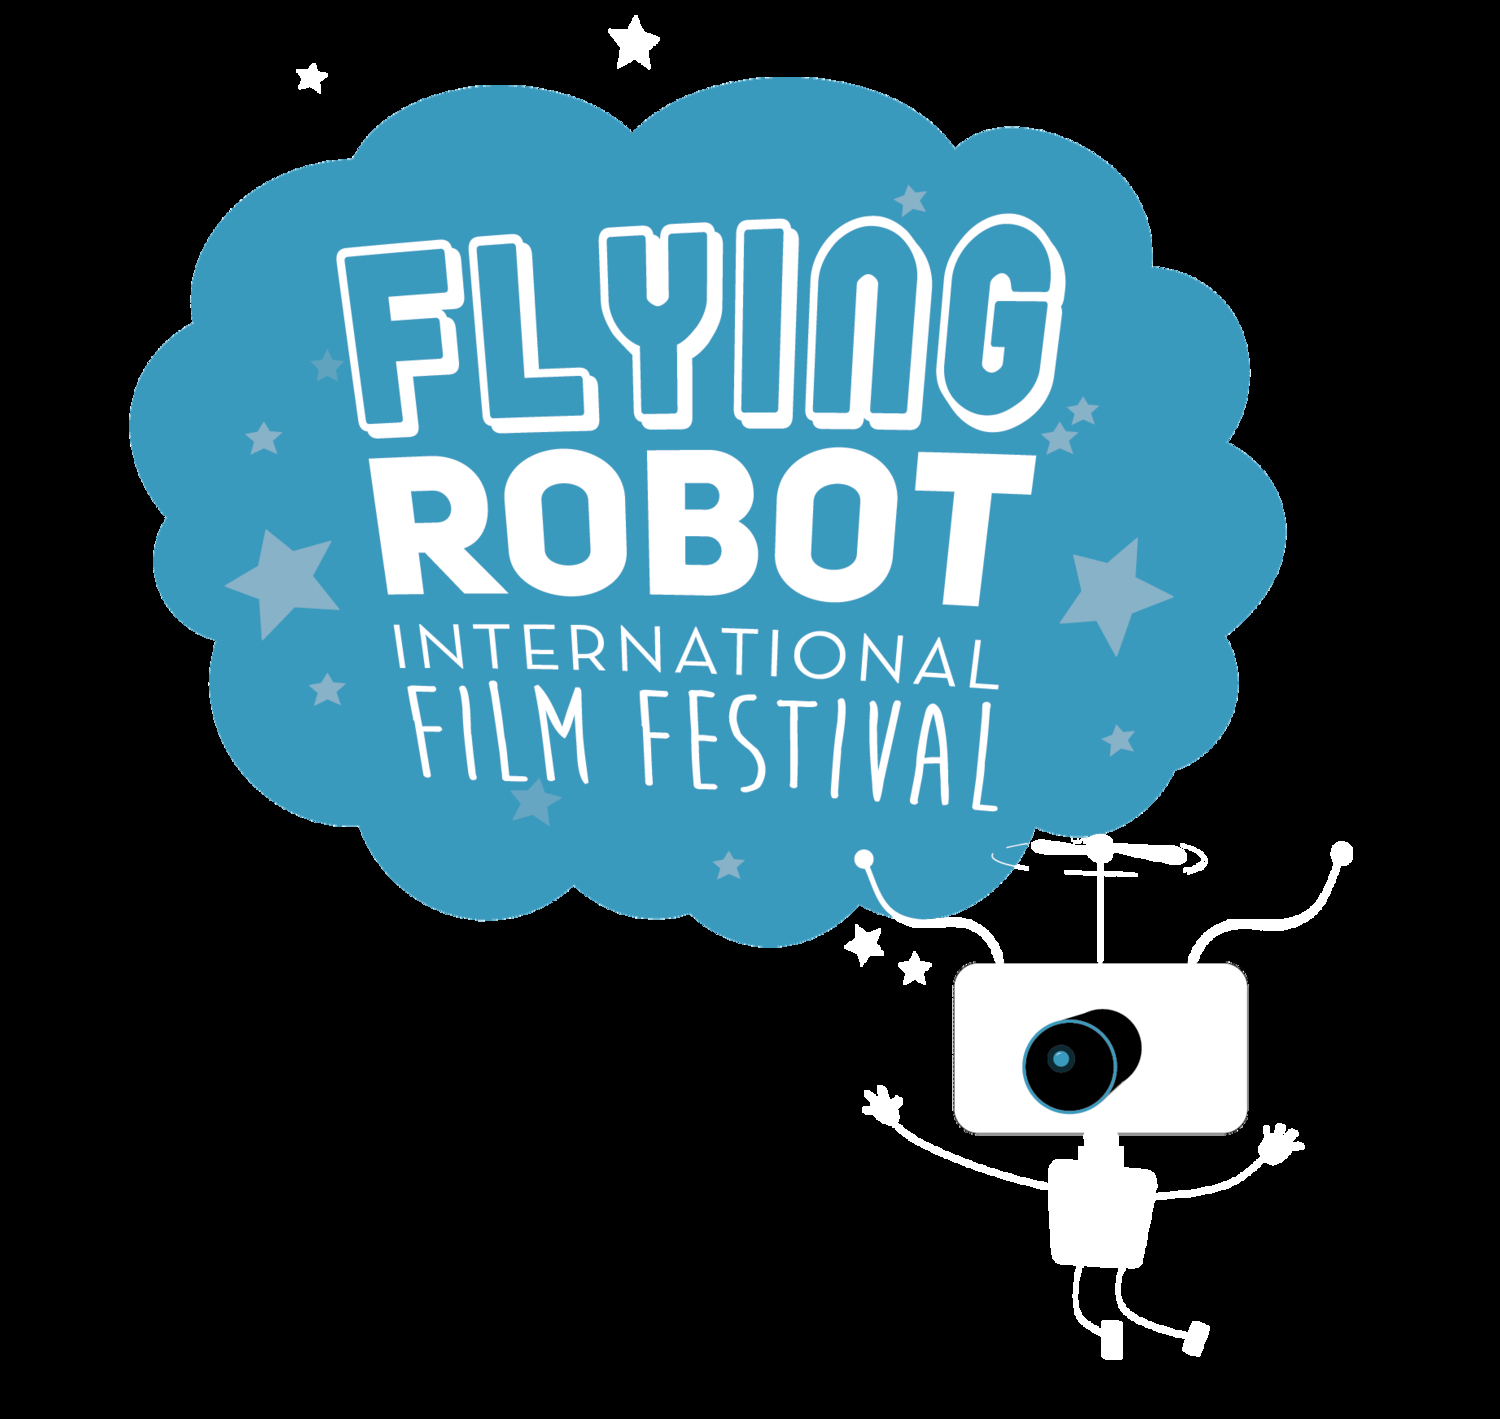 Flying robot film fest logo.jpeg